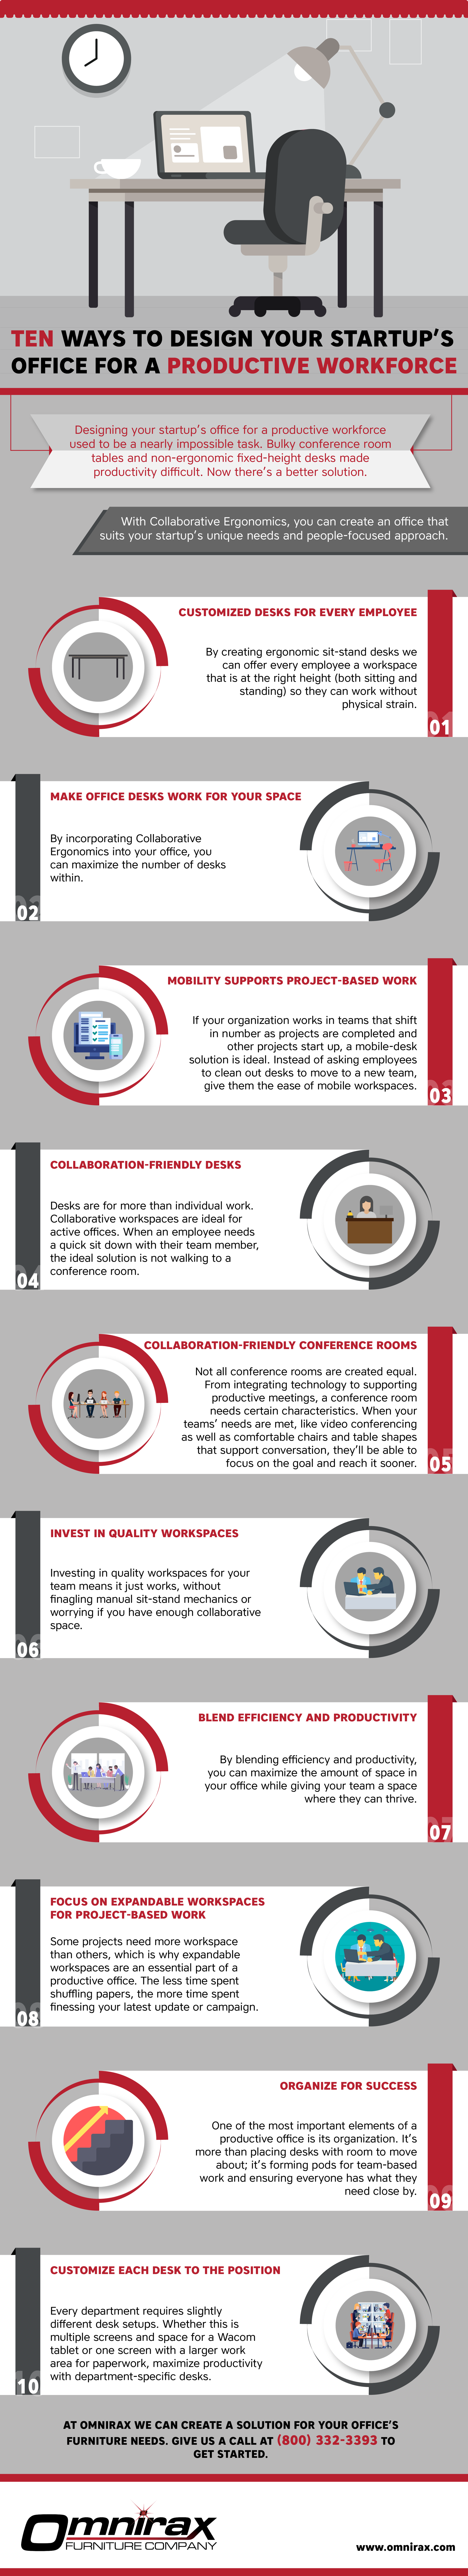 10-ways-design-startup-productive-workspace-infographic